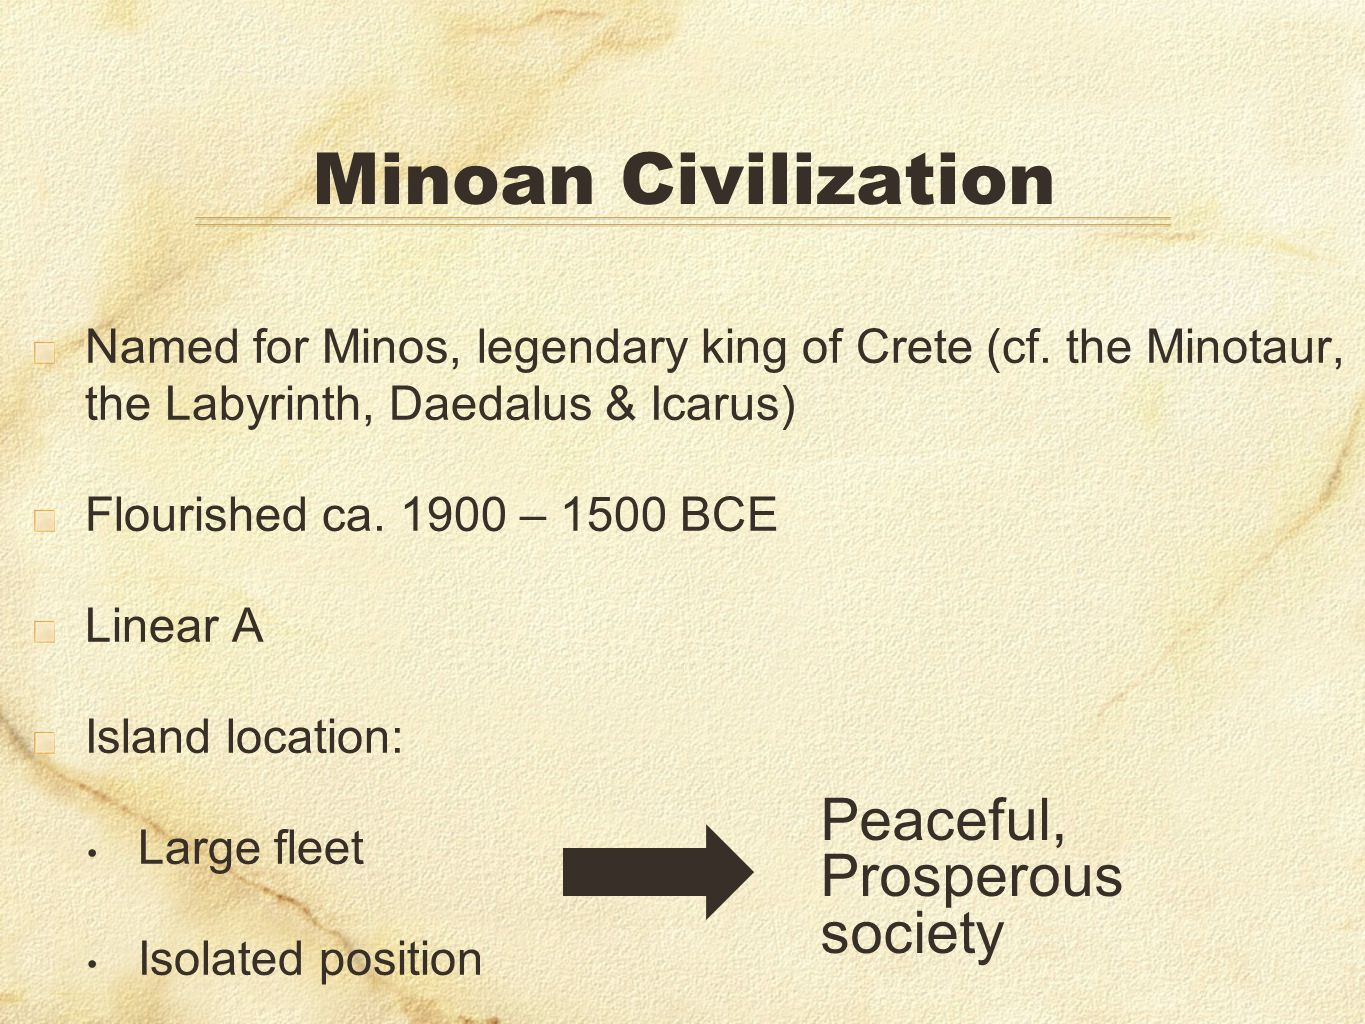 Minoan Civilization Peaceful, Prosperous society